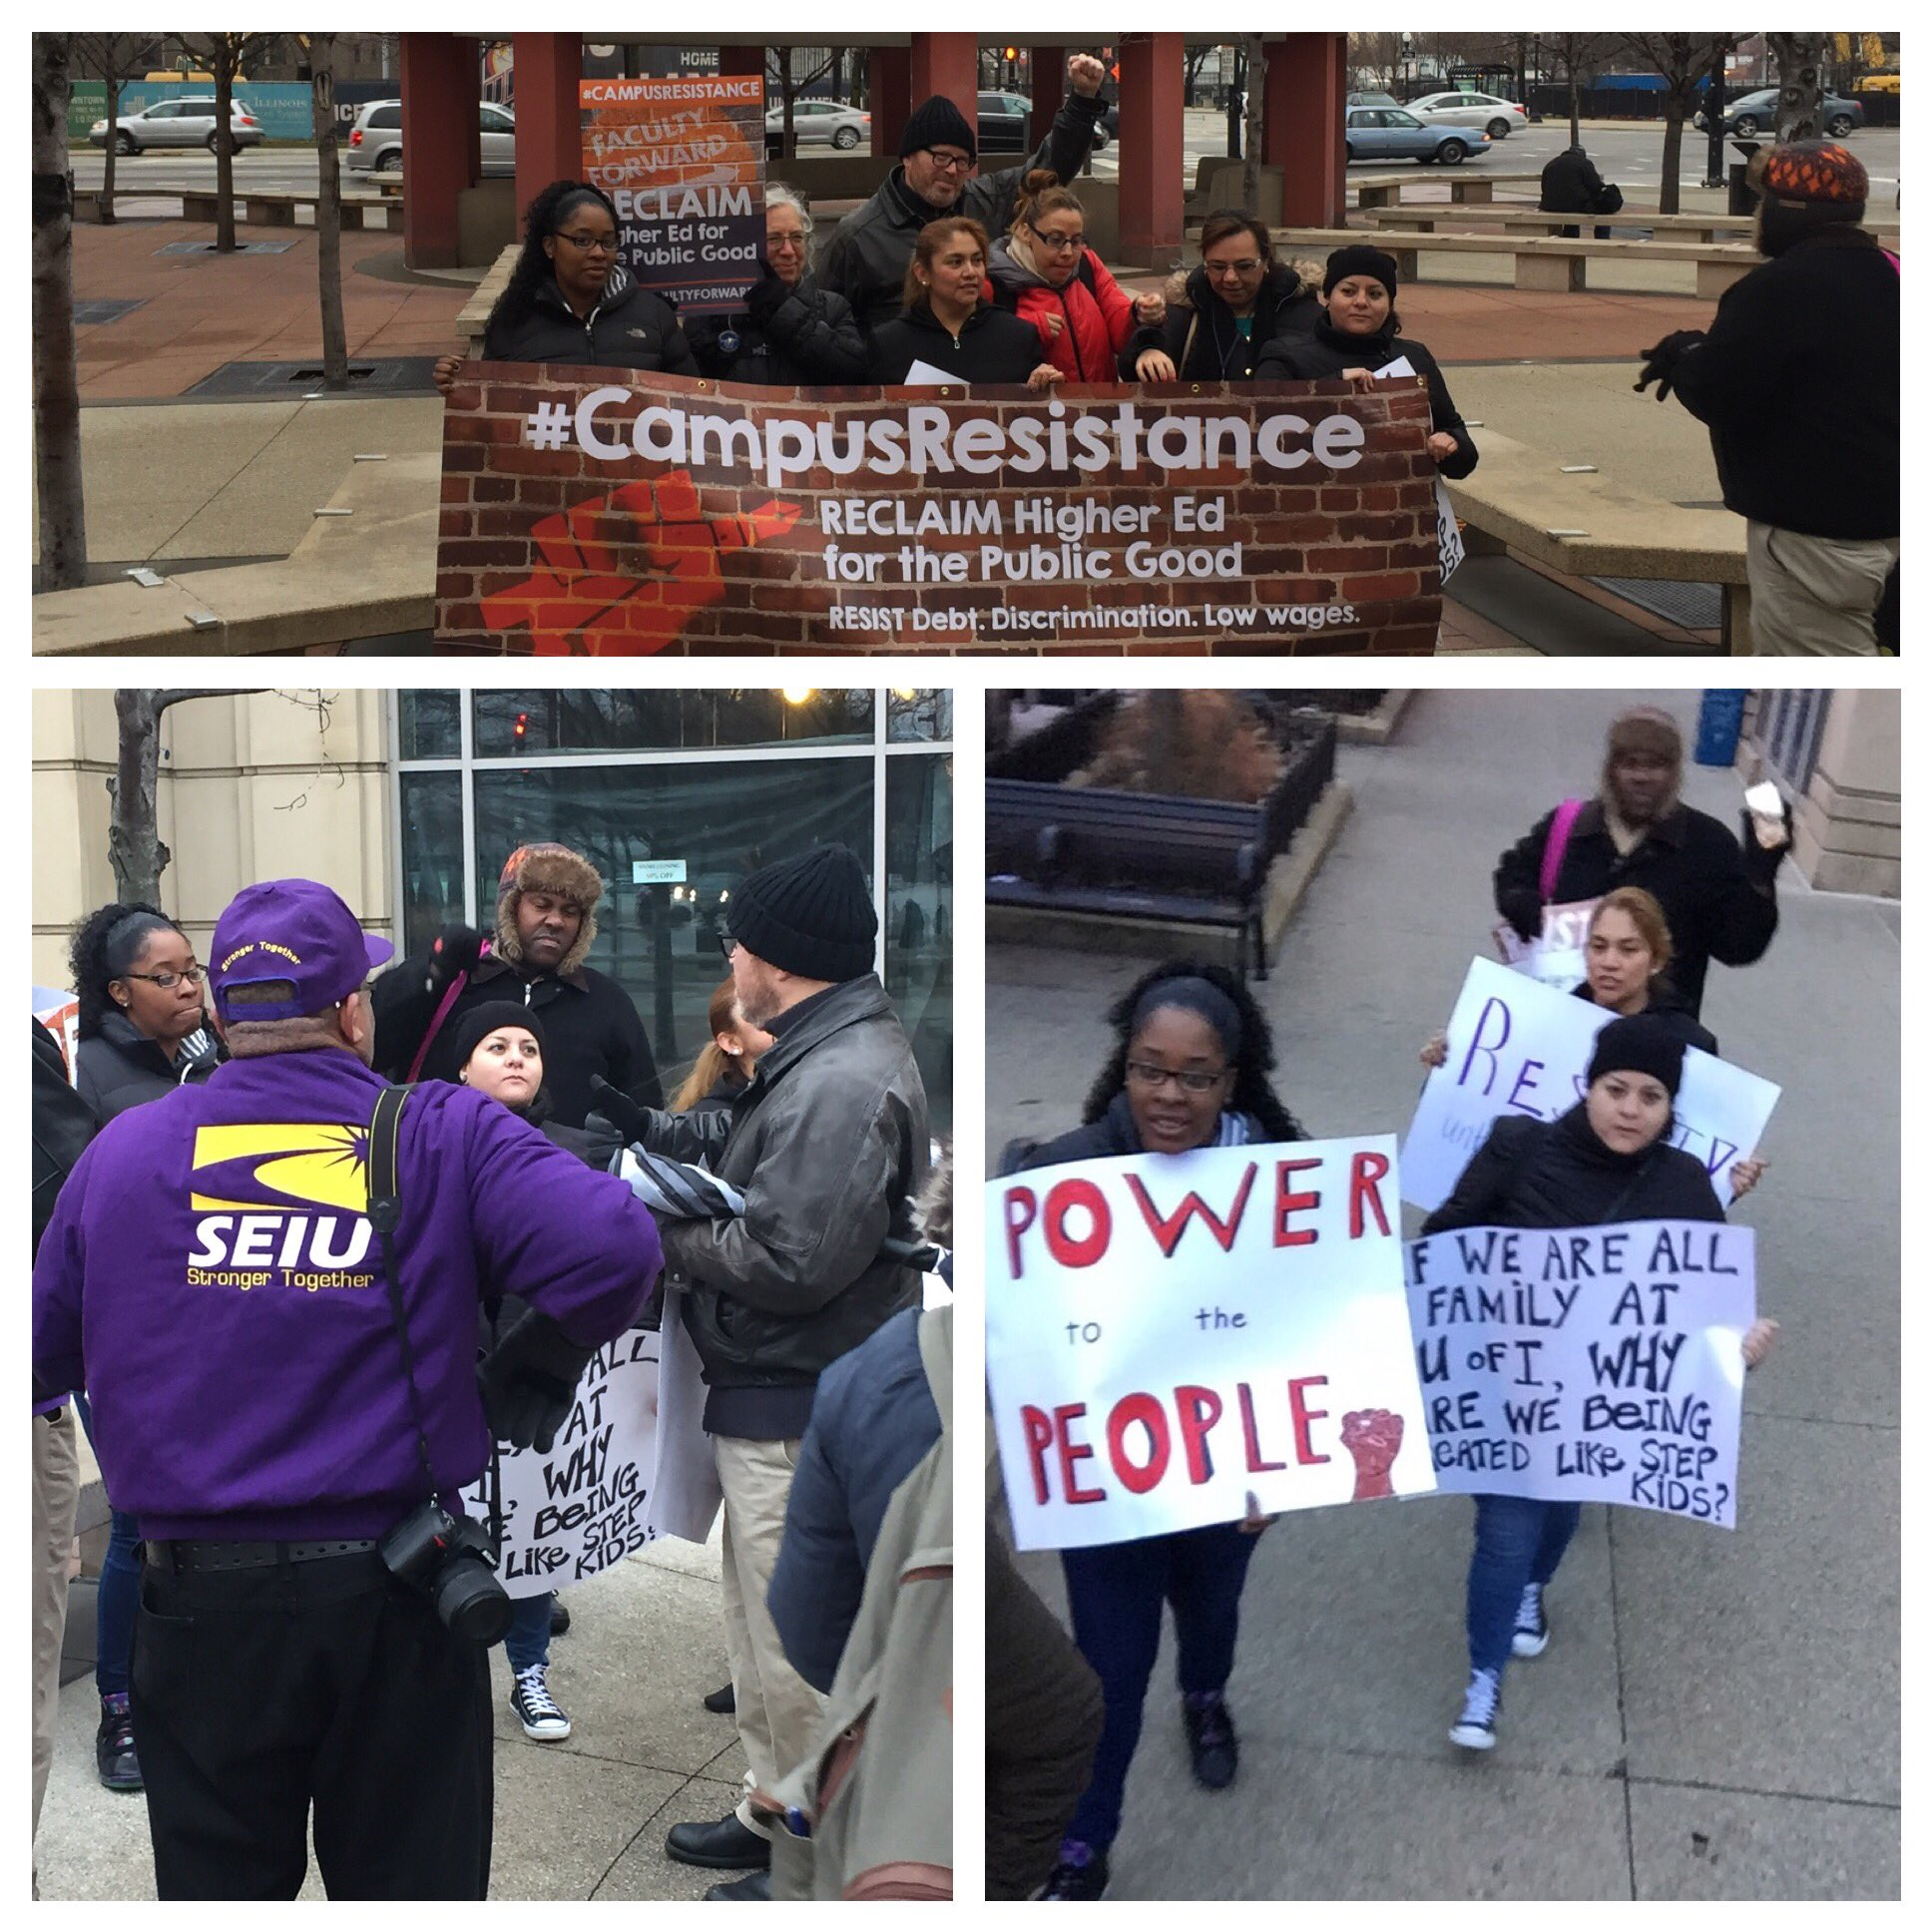 RT FacForwardChi: Kicking off #campusresistance in Chicago, SEIU L73 members at UIC demand fairness and respect! https://t.co/J7XkKFJnv4